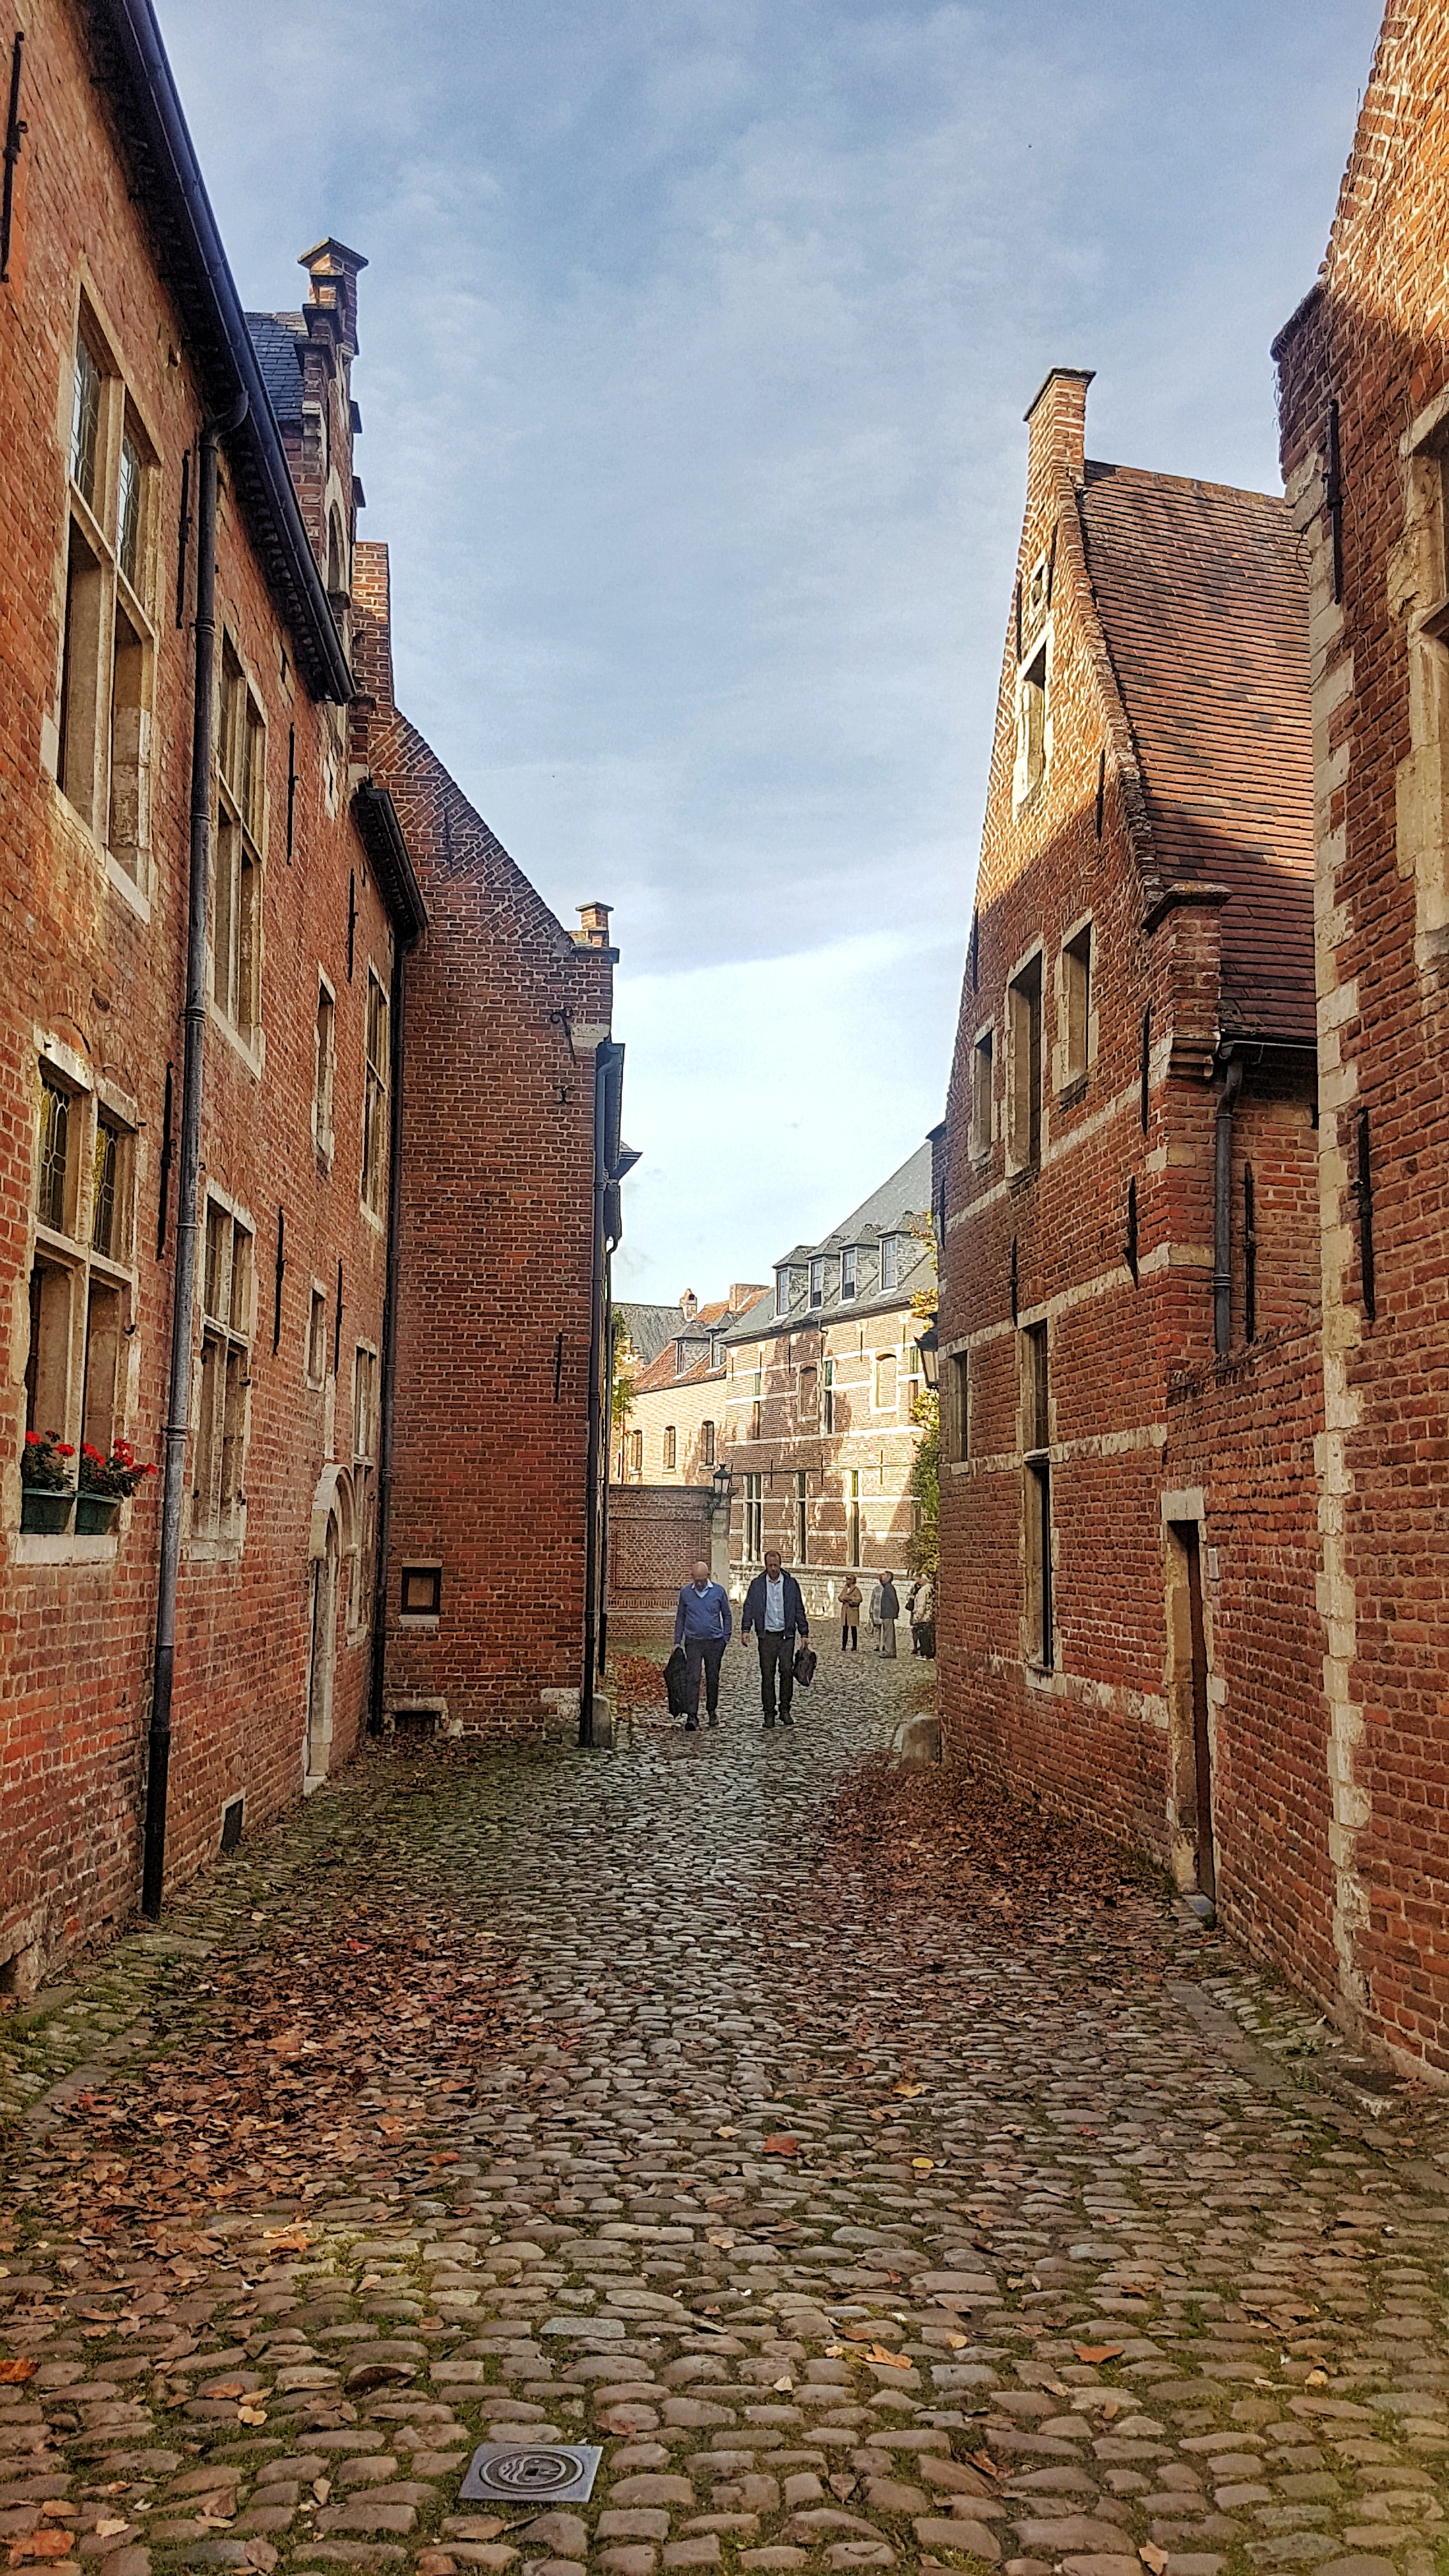 UNESCO heritage site of Groot Begijnhof in Leuven, read more about what you can do in Leuven in 48 hours at www.whatsupcourtney.com #Leuven #travel #travelguide